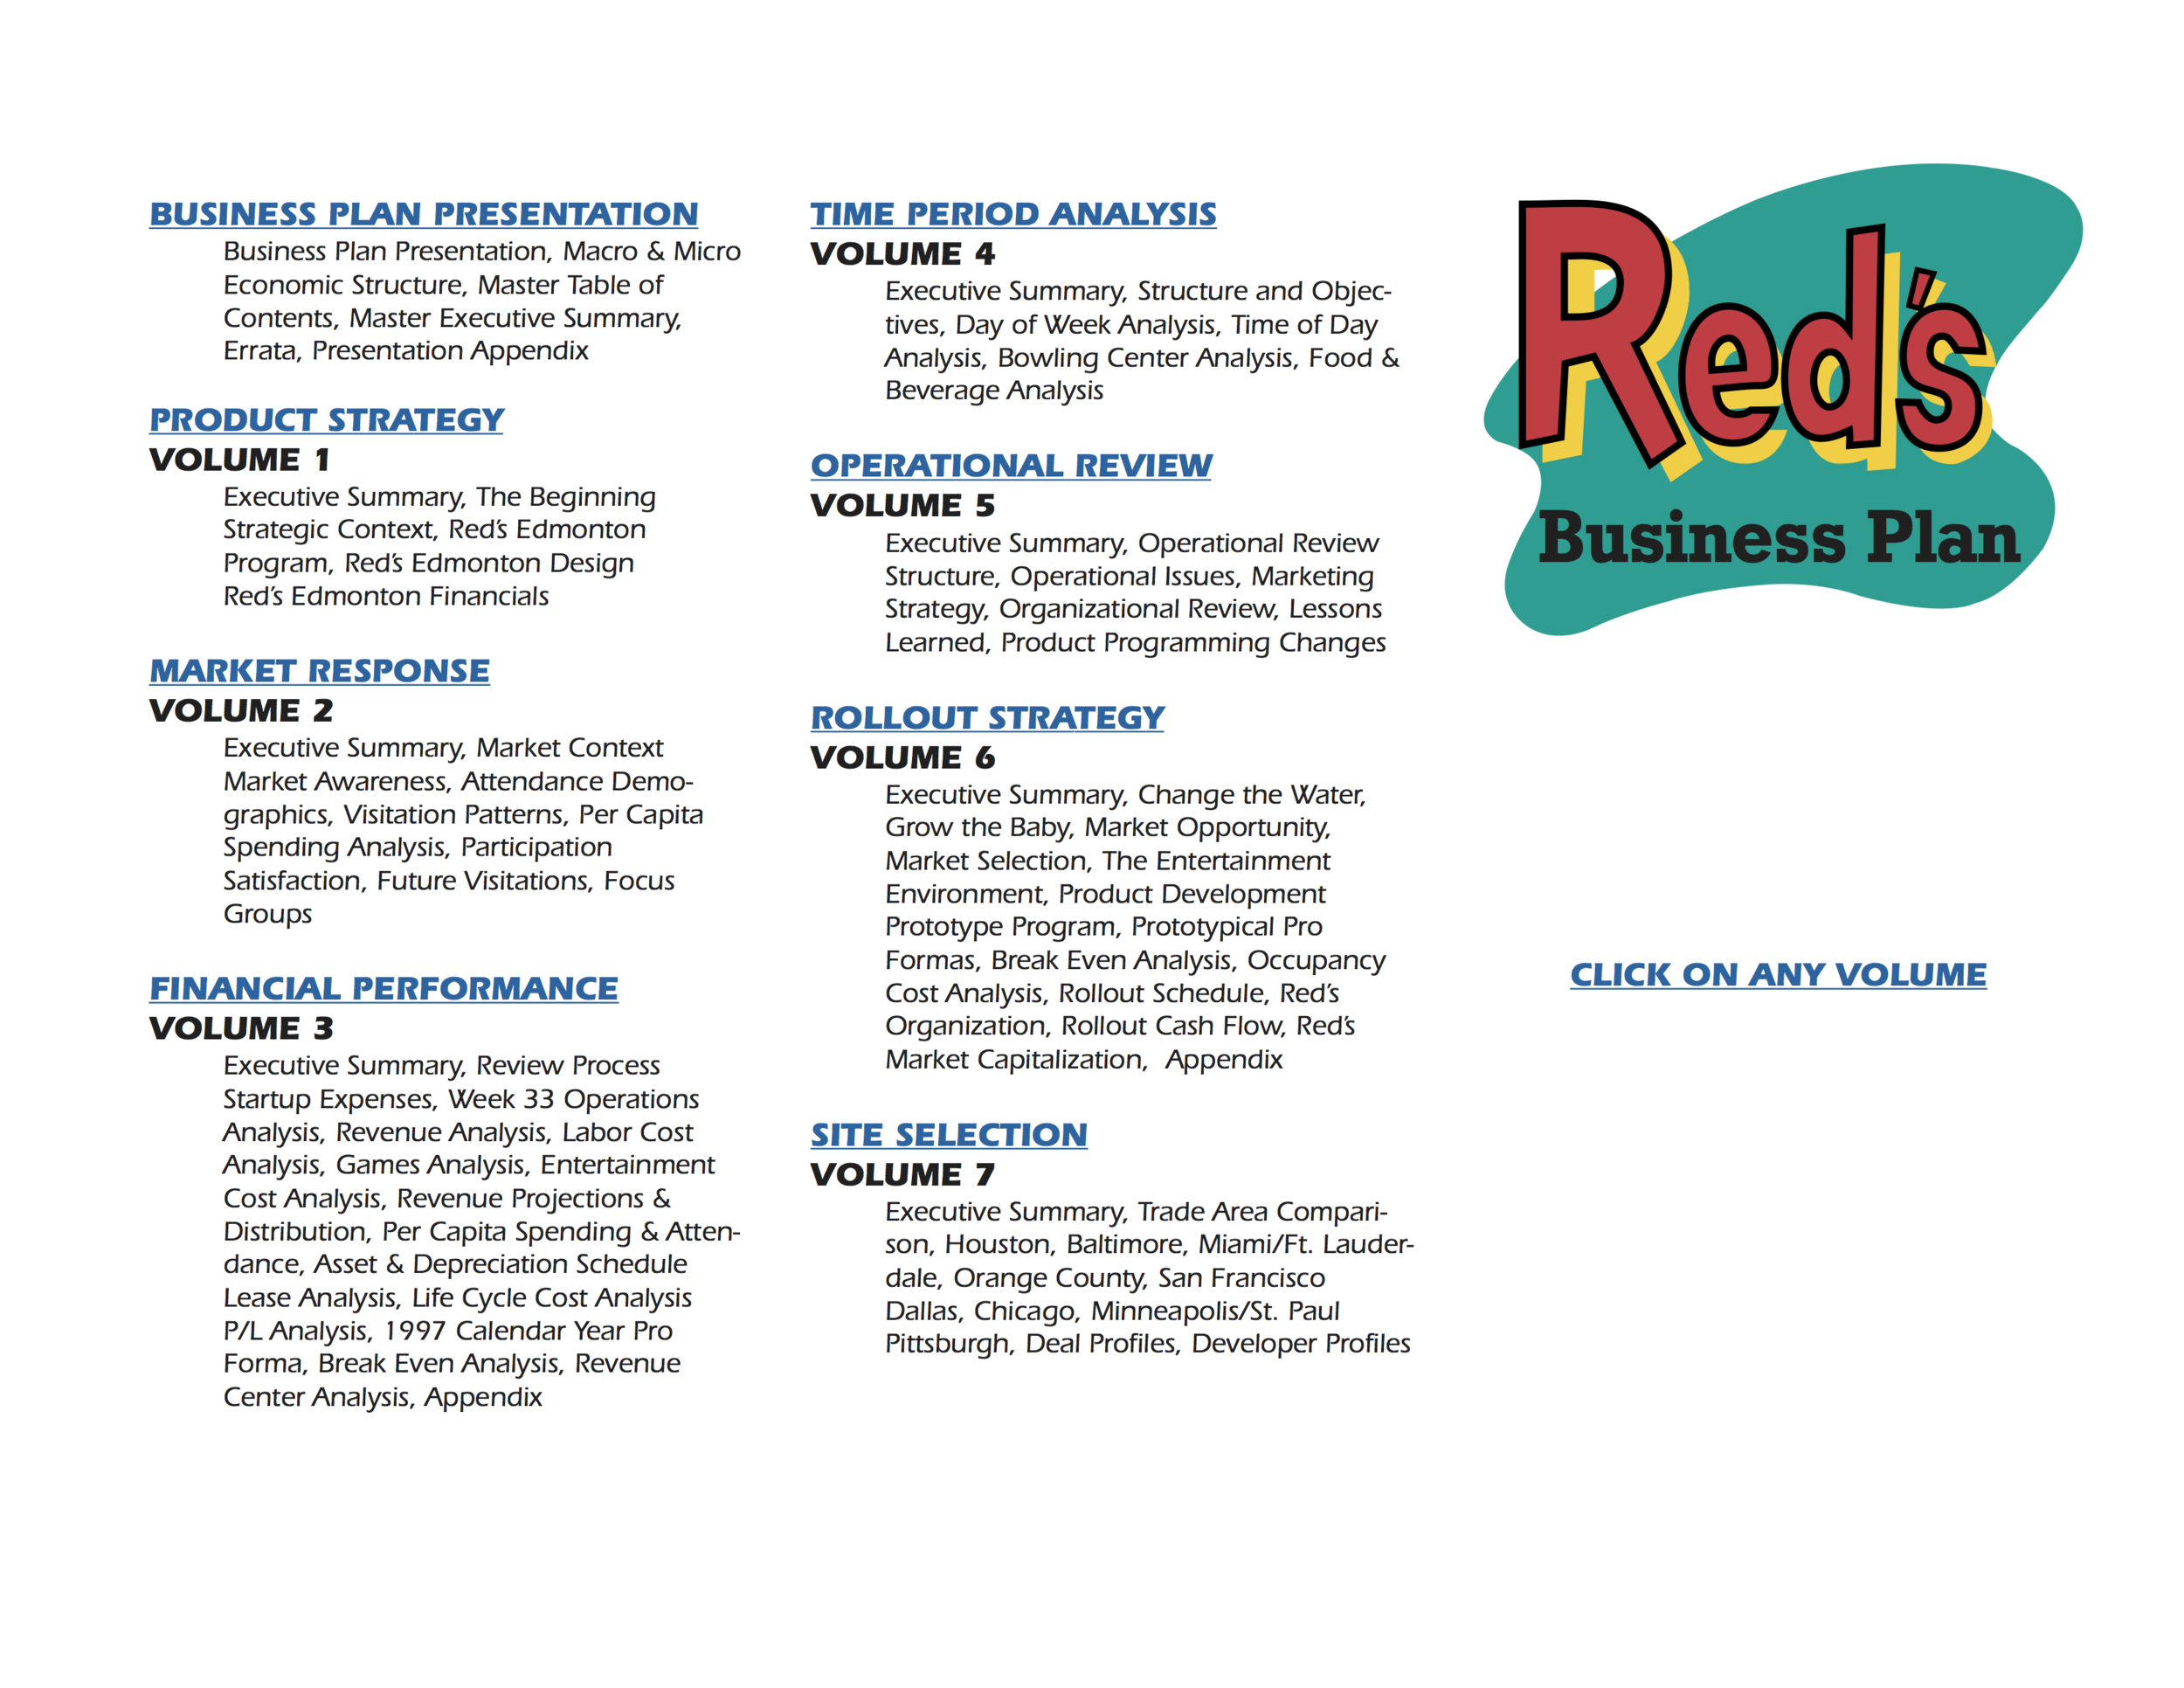 2. Red's Business Plan0 (dragged) 1.png